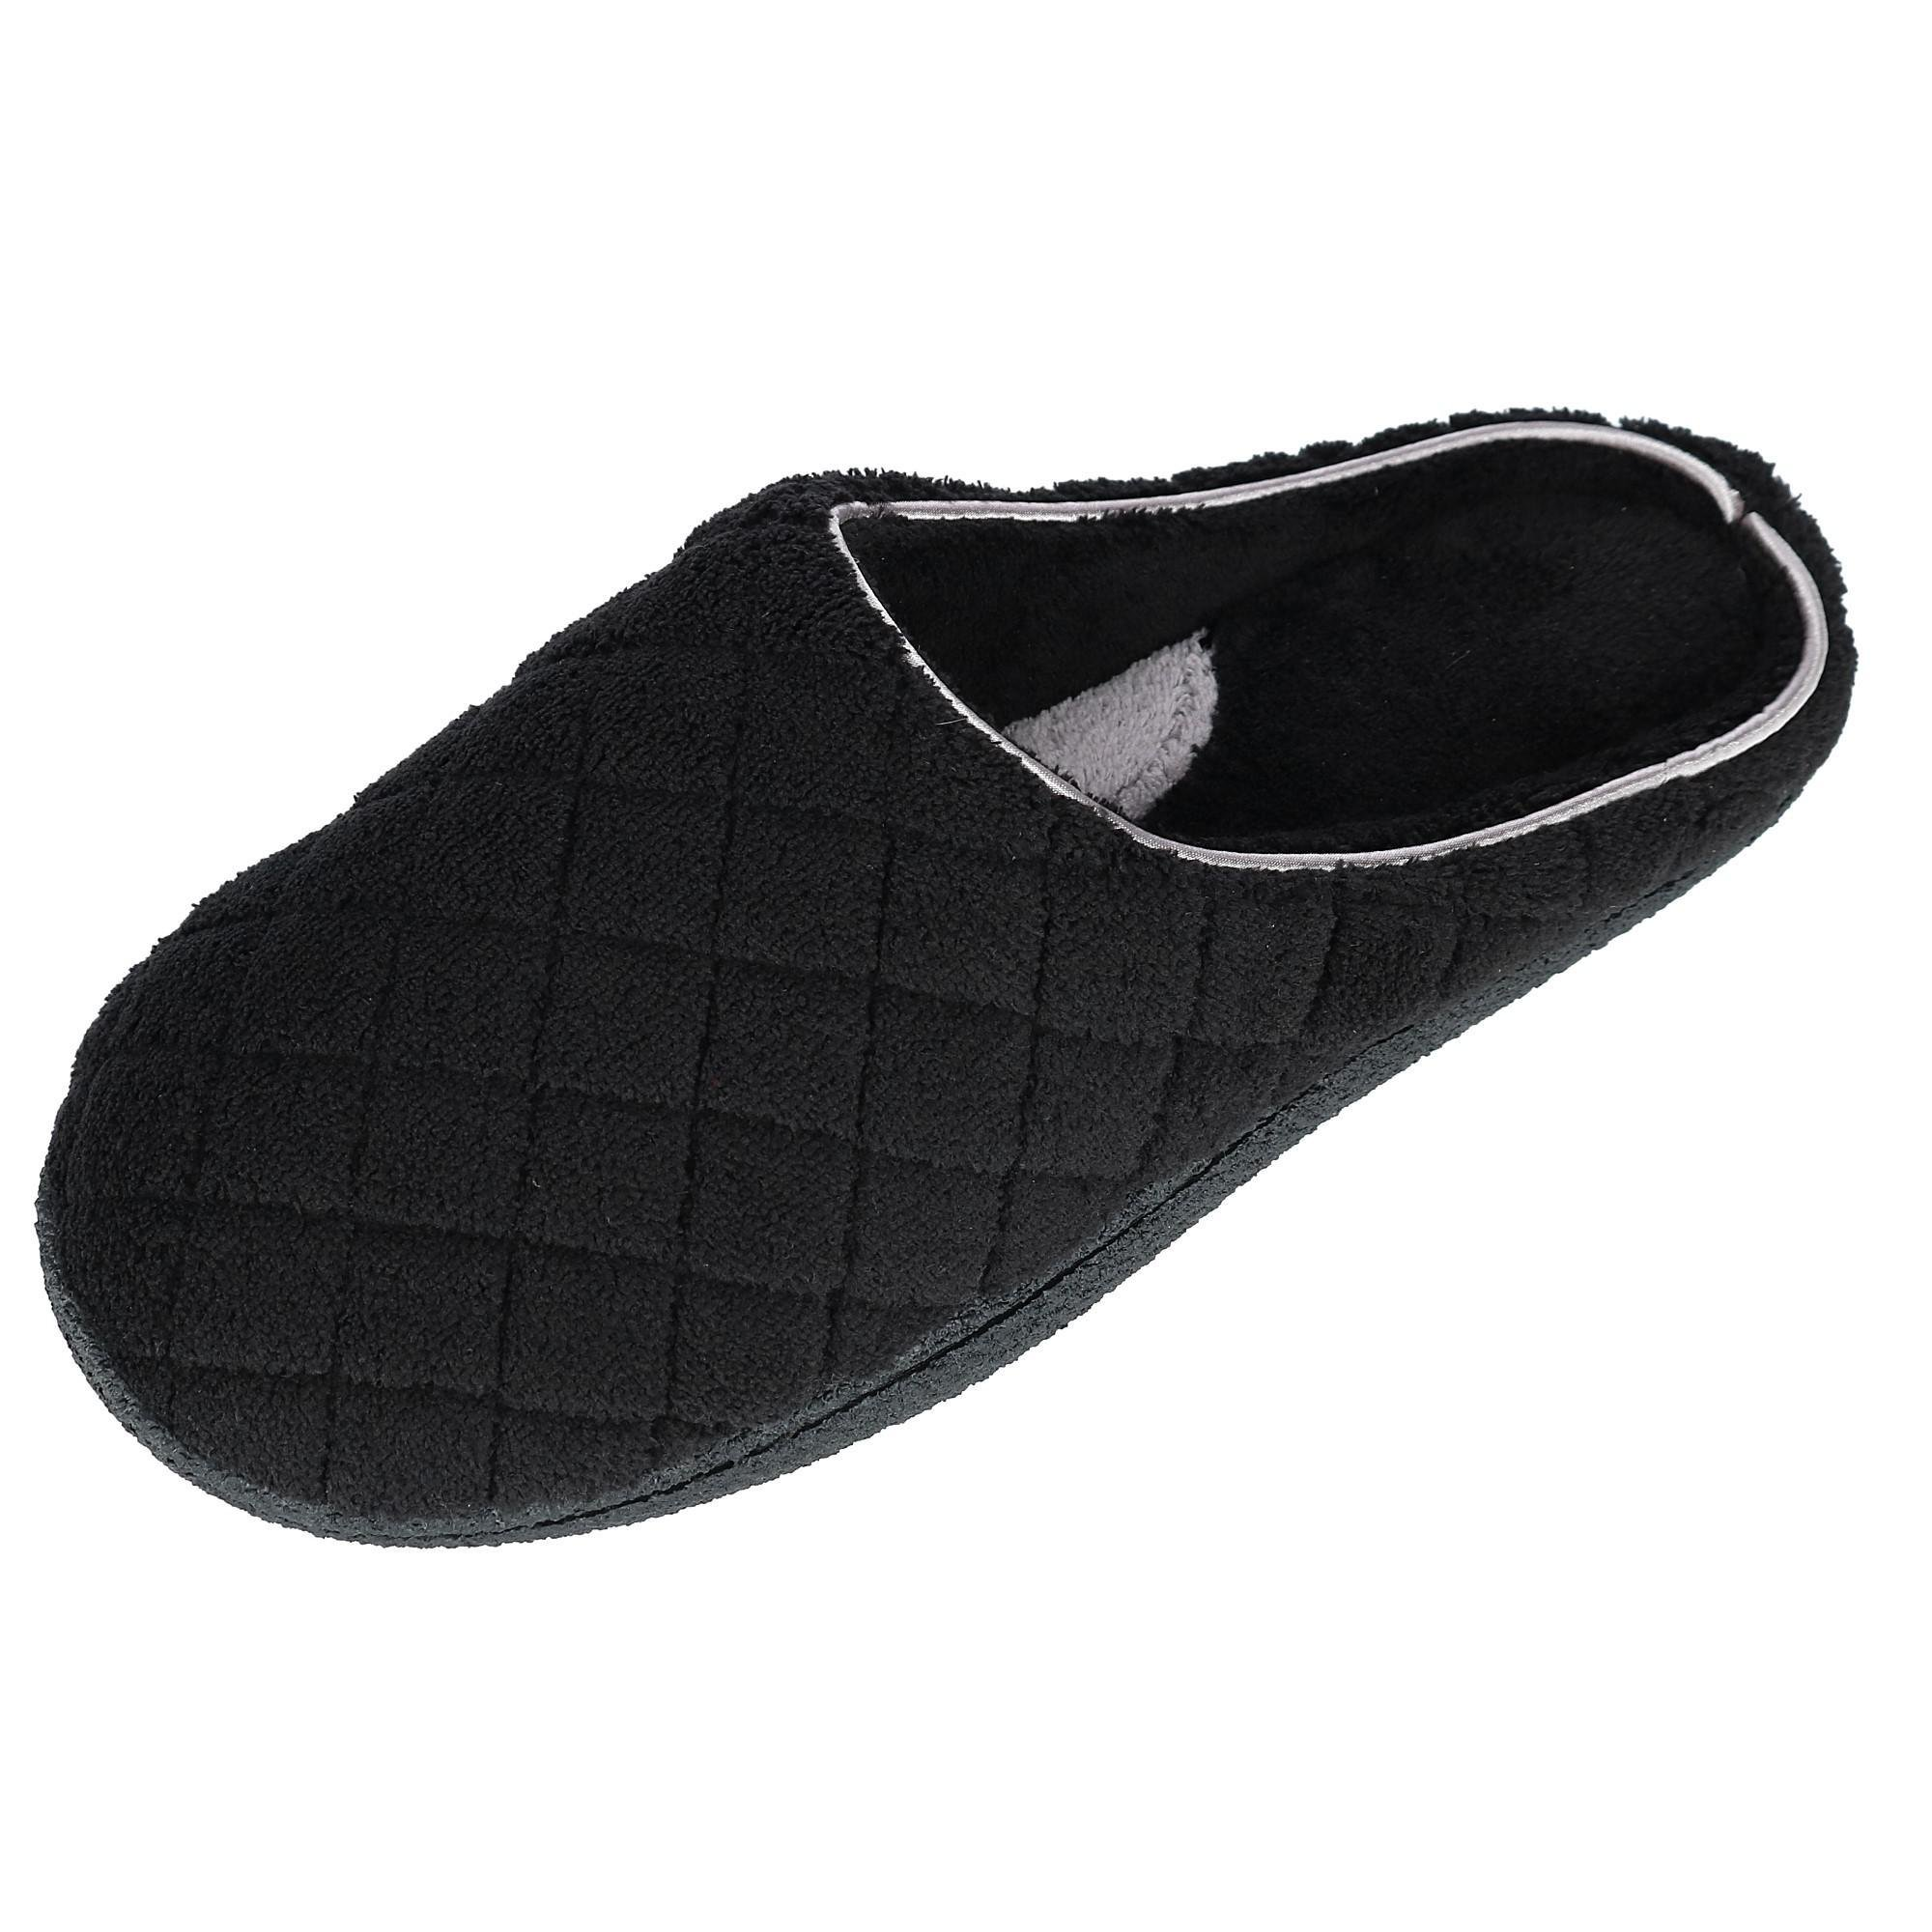 Dearfoams Women's Quilted Terry Clog Mule Slipper – Padded Terrycloth Slip-ONS with Skid-Resistant Rubber Outsole, Black, Large/9-10 M US